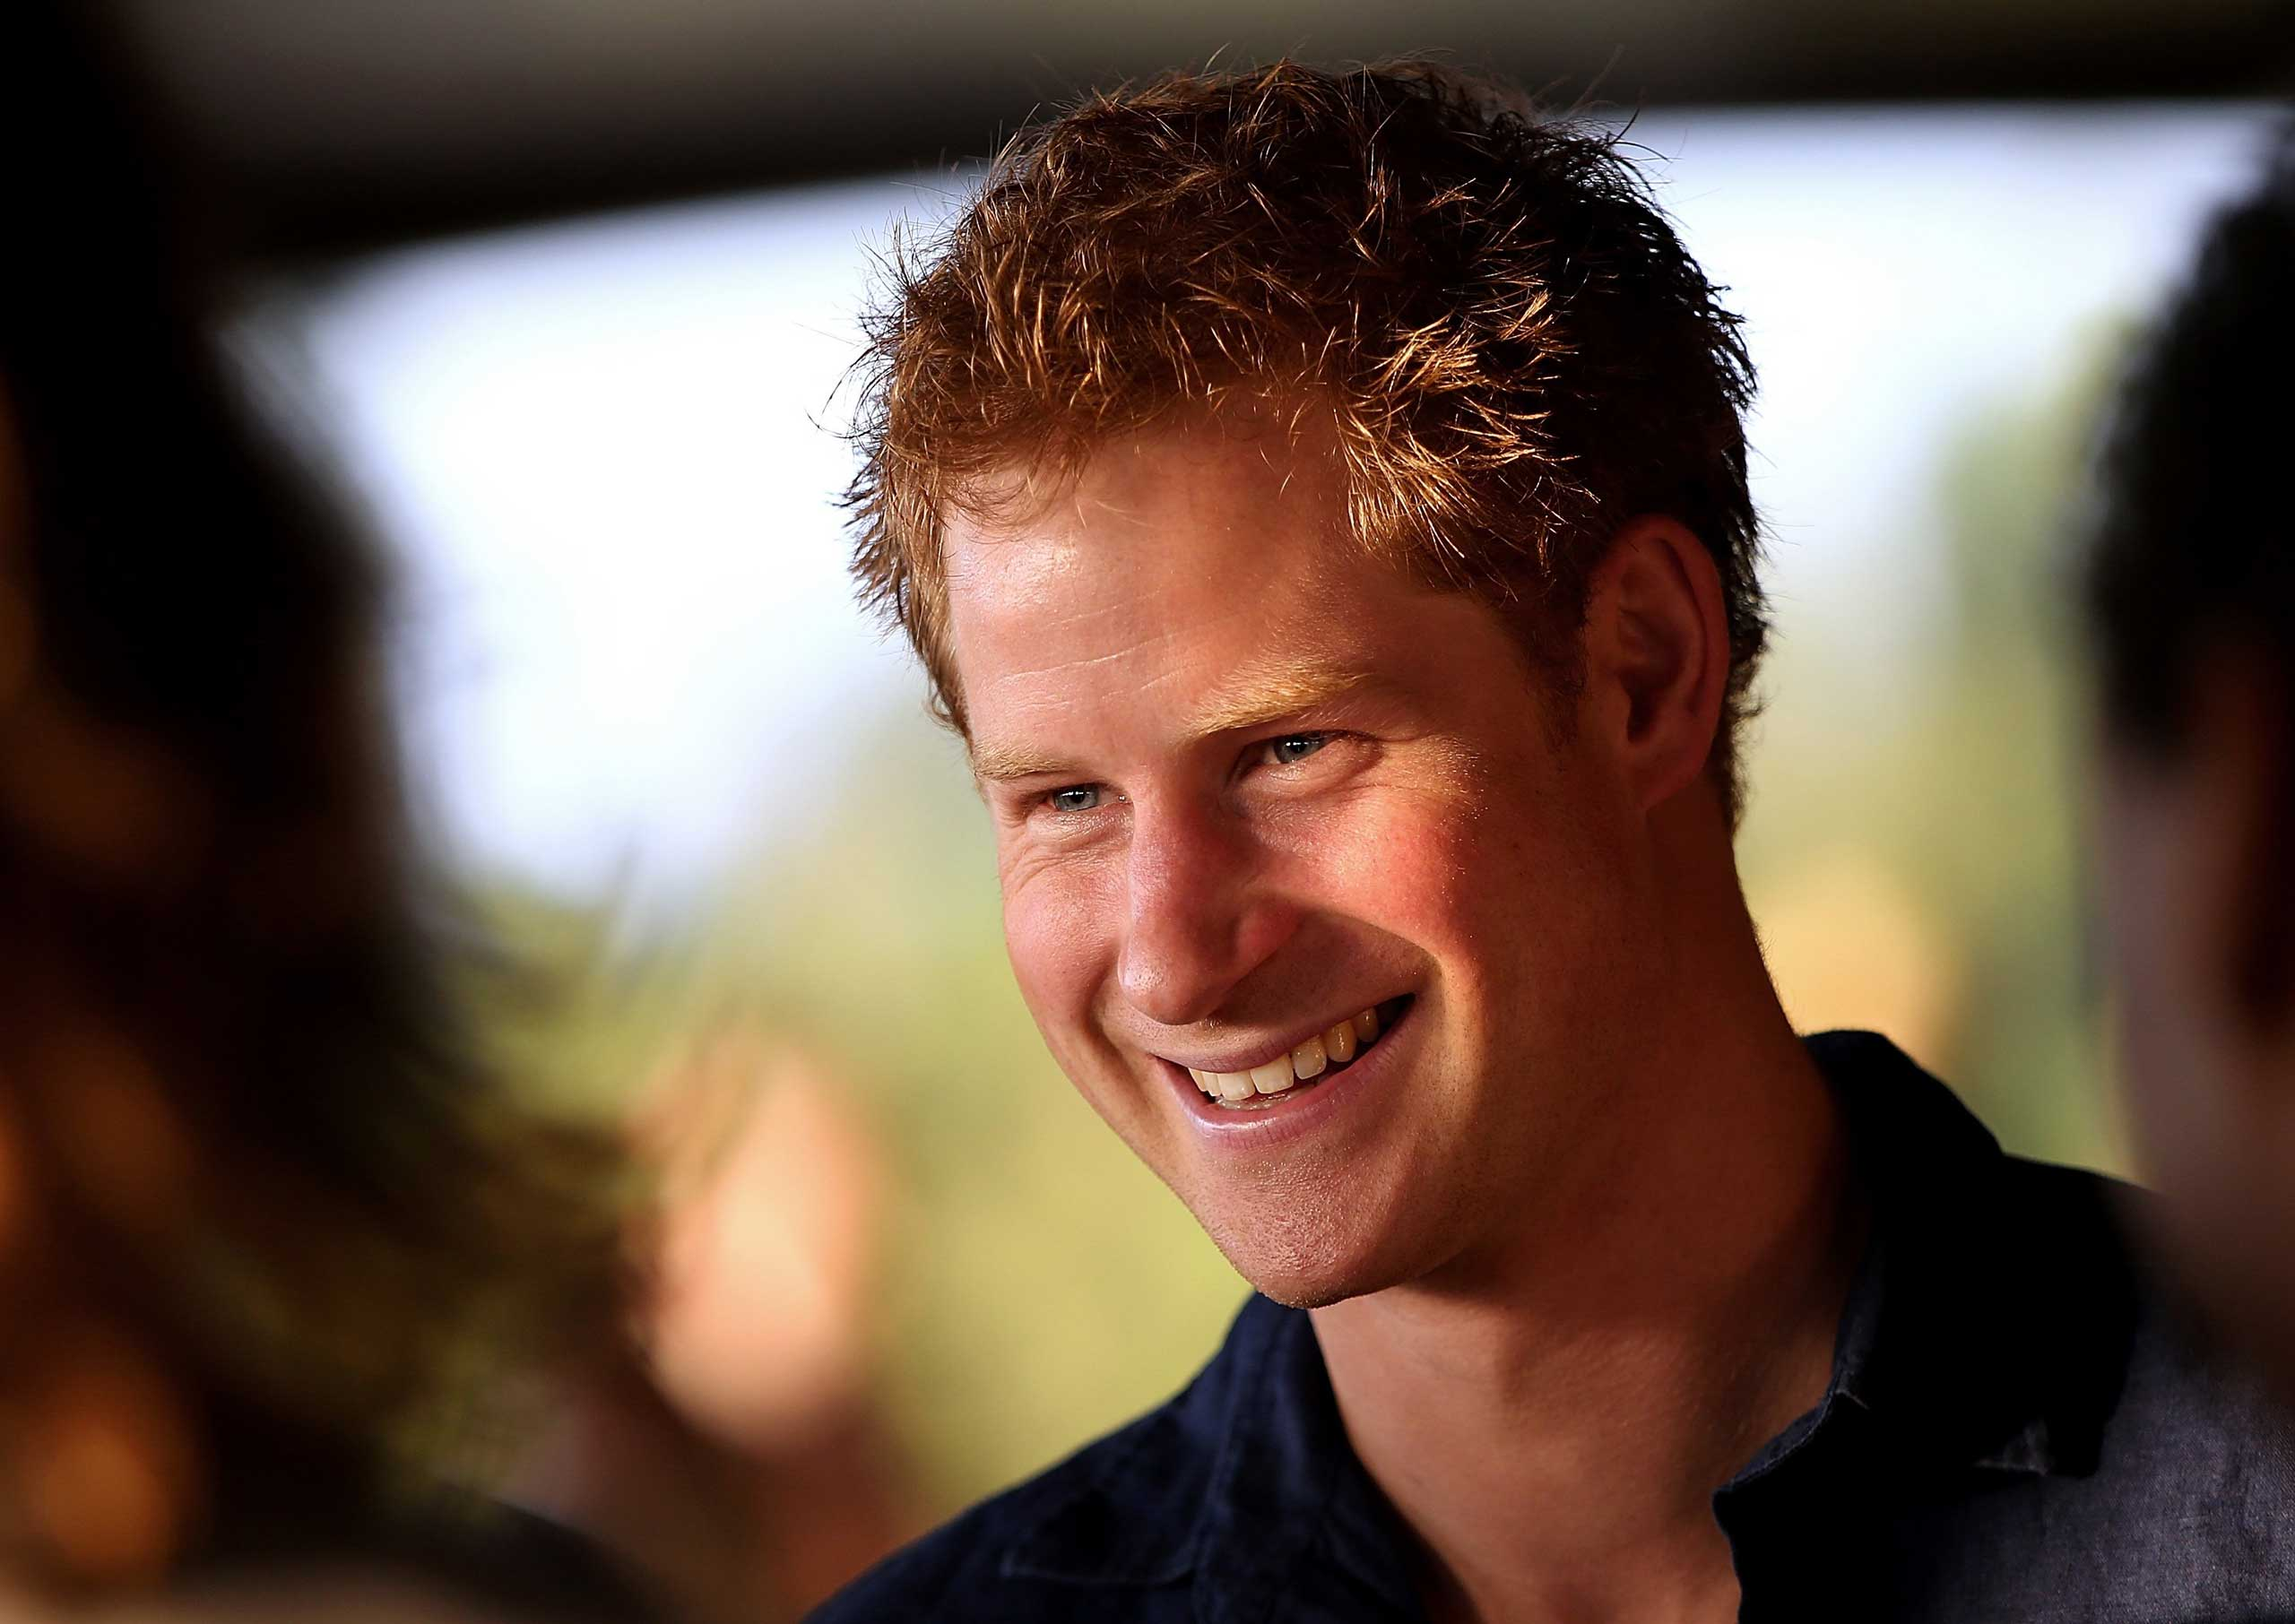 Prince Harry attends the Sentebale Polo Cup presented by Royal Salute World Polo at Ghantoot Polo Club in Abu Dhabi on Nov. 20, 2014.